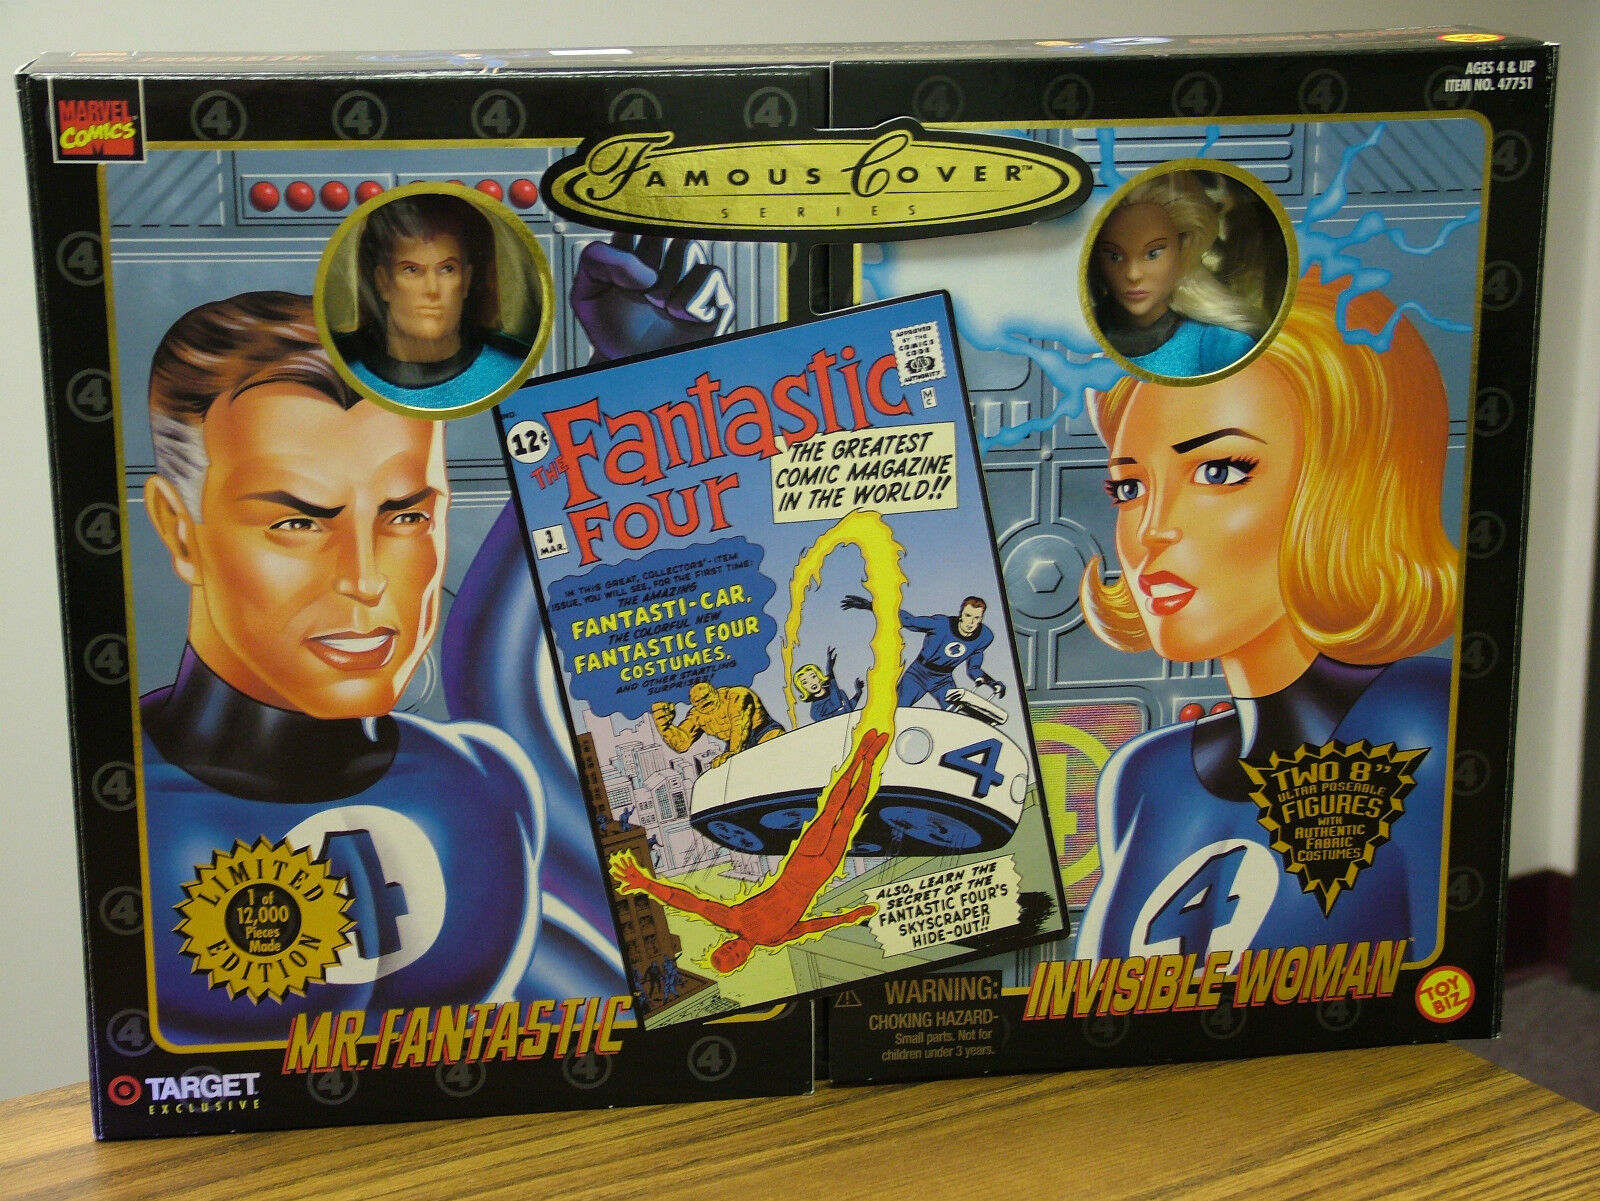 Famous Cover - Mr. Fantastic and Invisible Woman --  Limited Edition  1998